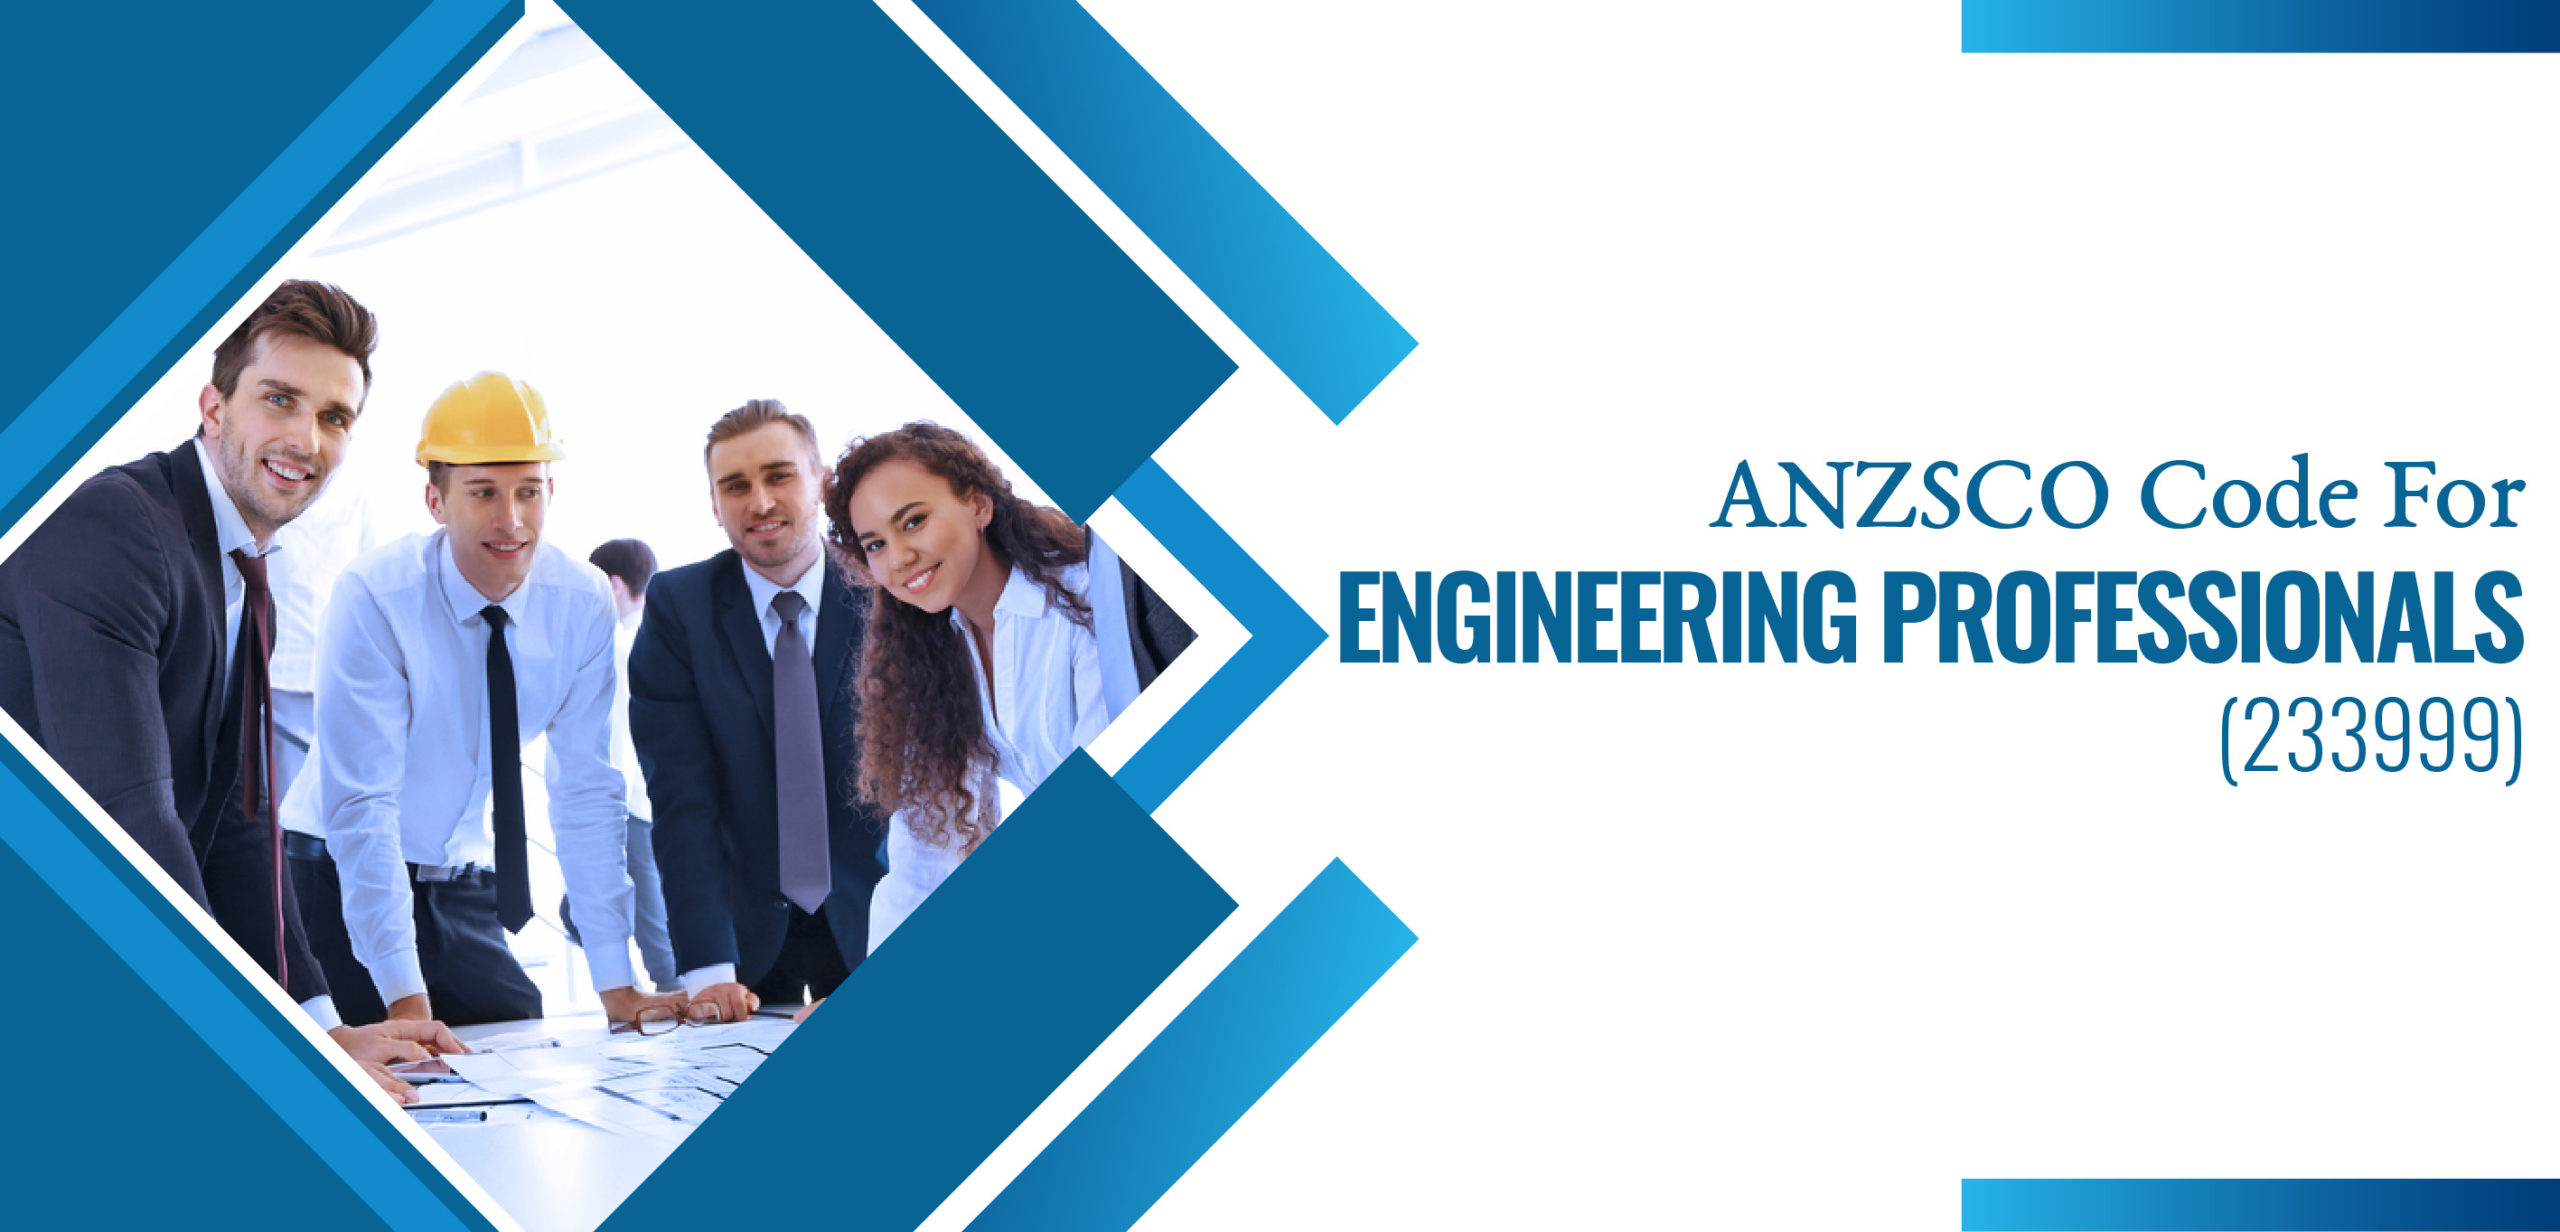 ANZSCO Code for Engineering Professionals